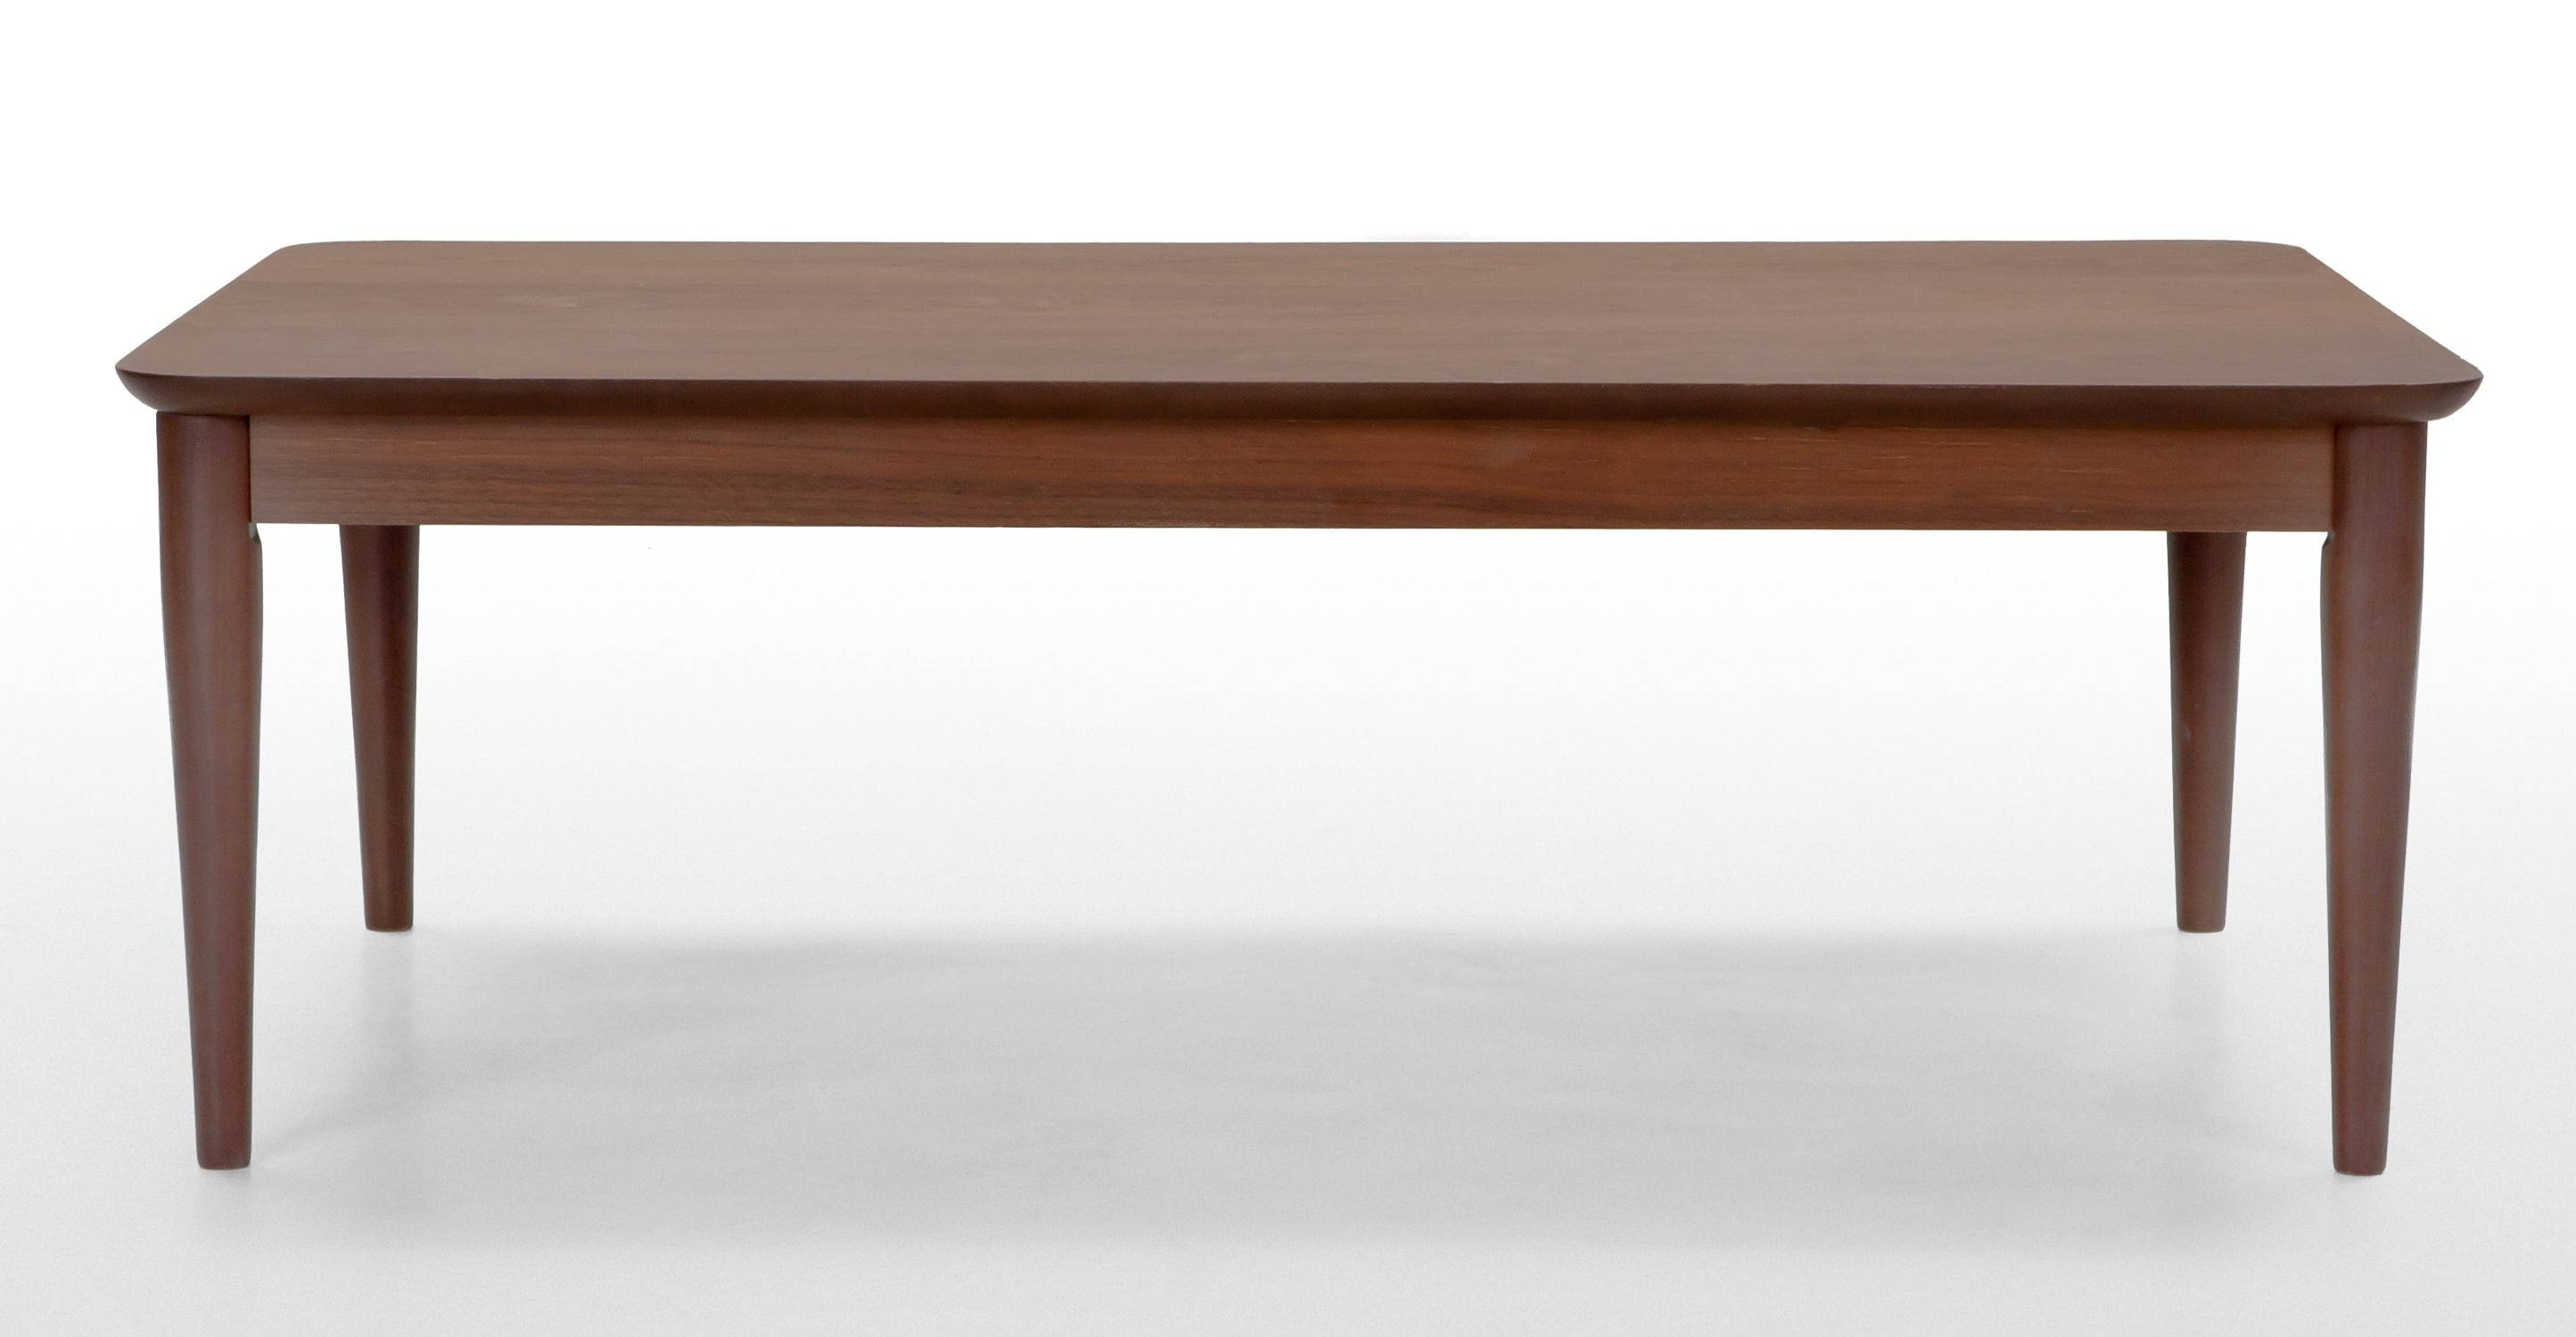 Coffee Table: Remarkable Rectangular Coffee Table Ideas Large Inside Large Rectangular Coffee Tables (View 21 of 30)